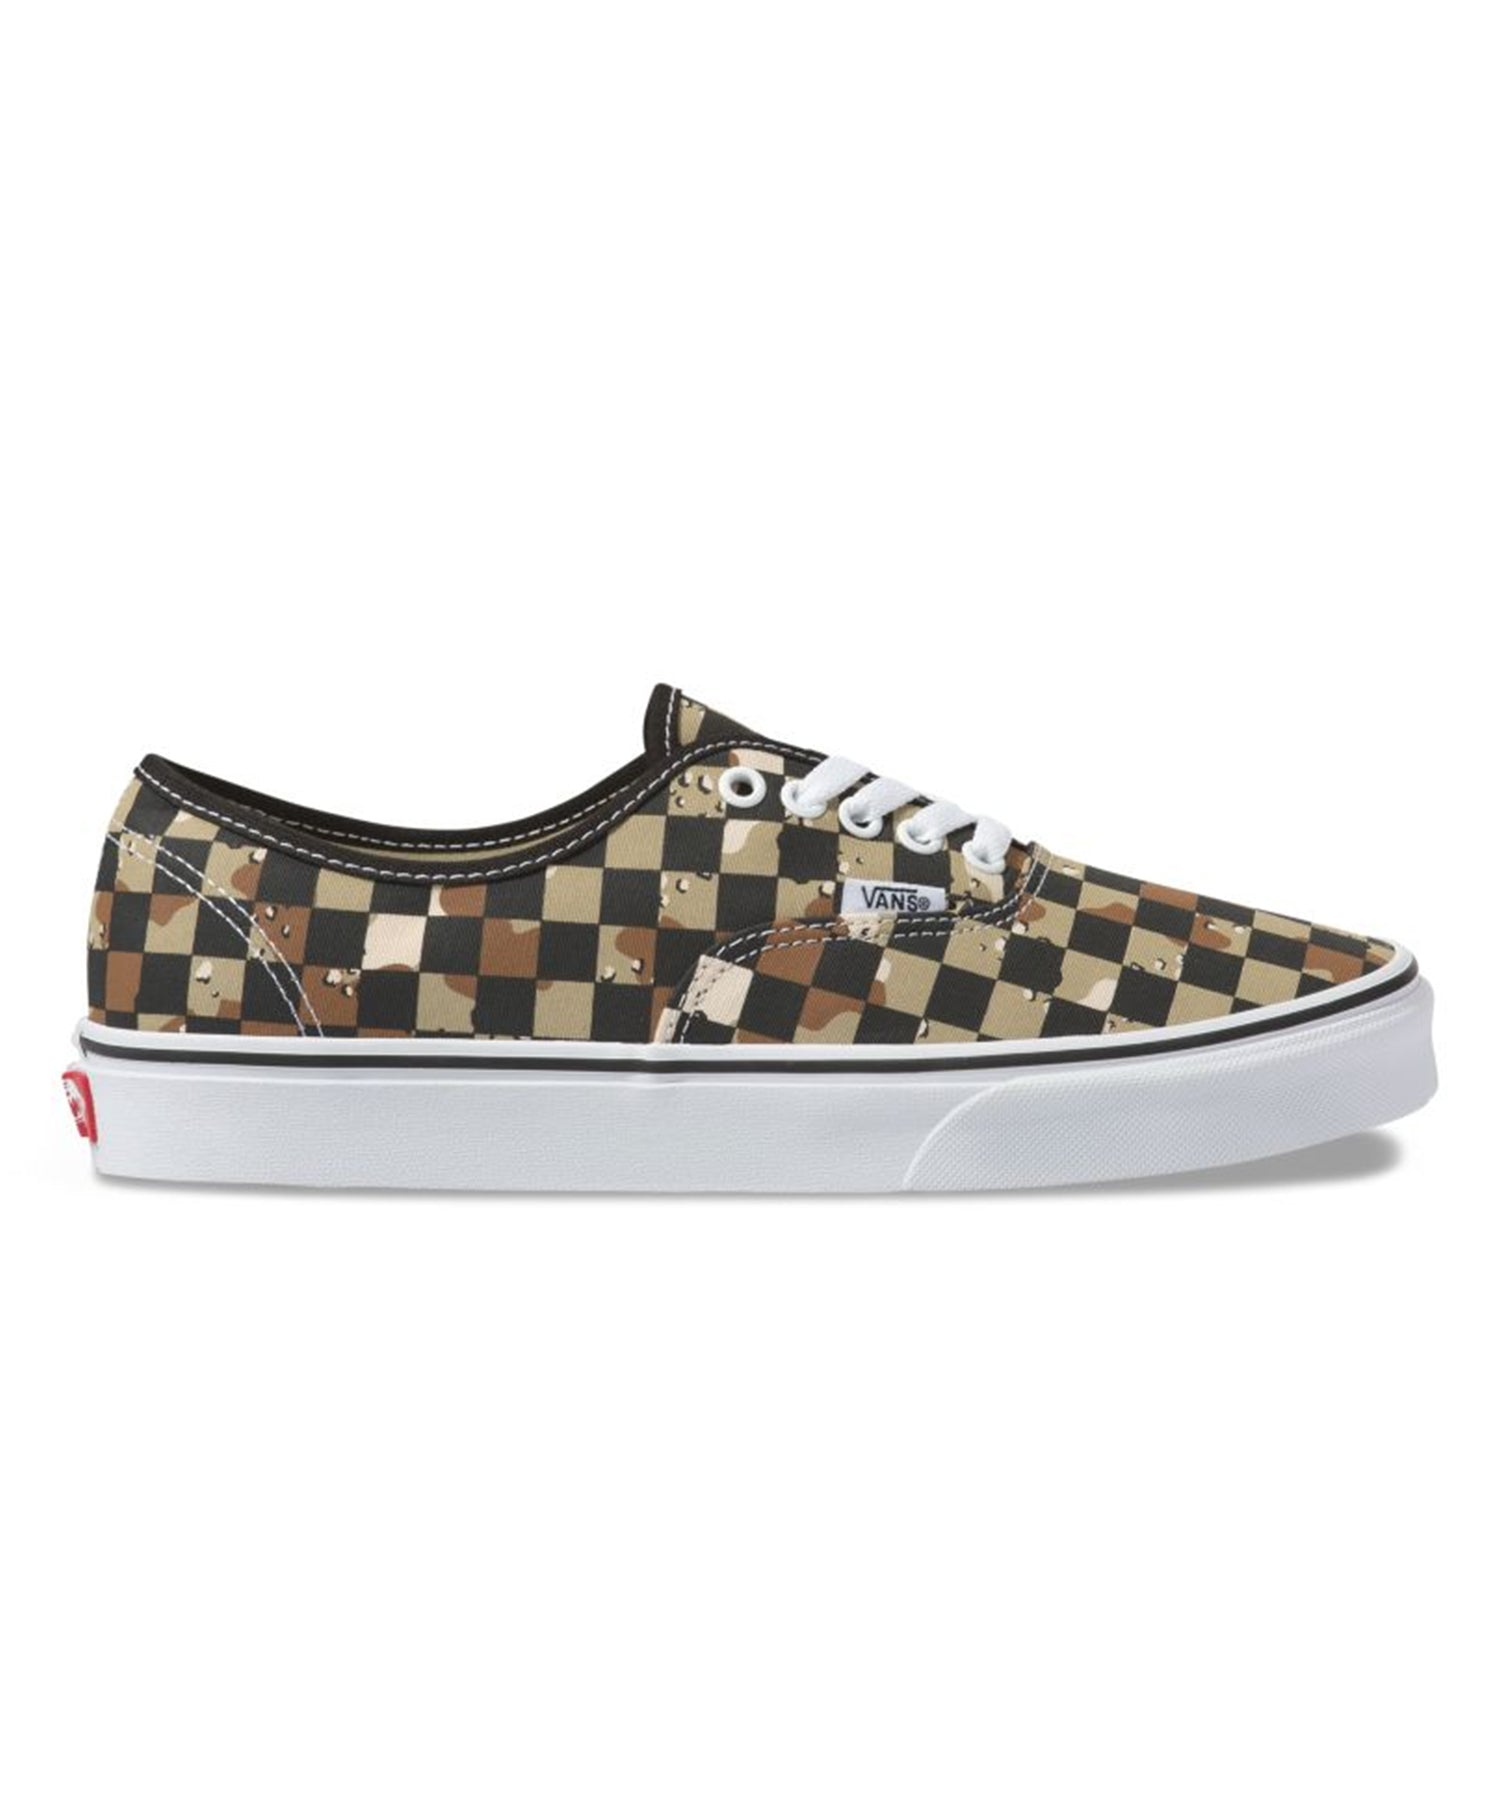 Vans Camouflage Checkerboard Authentic